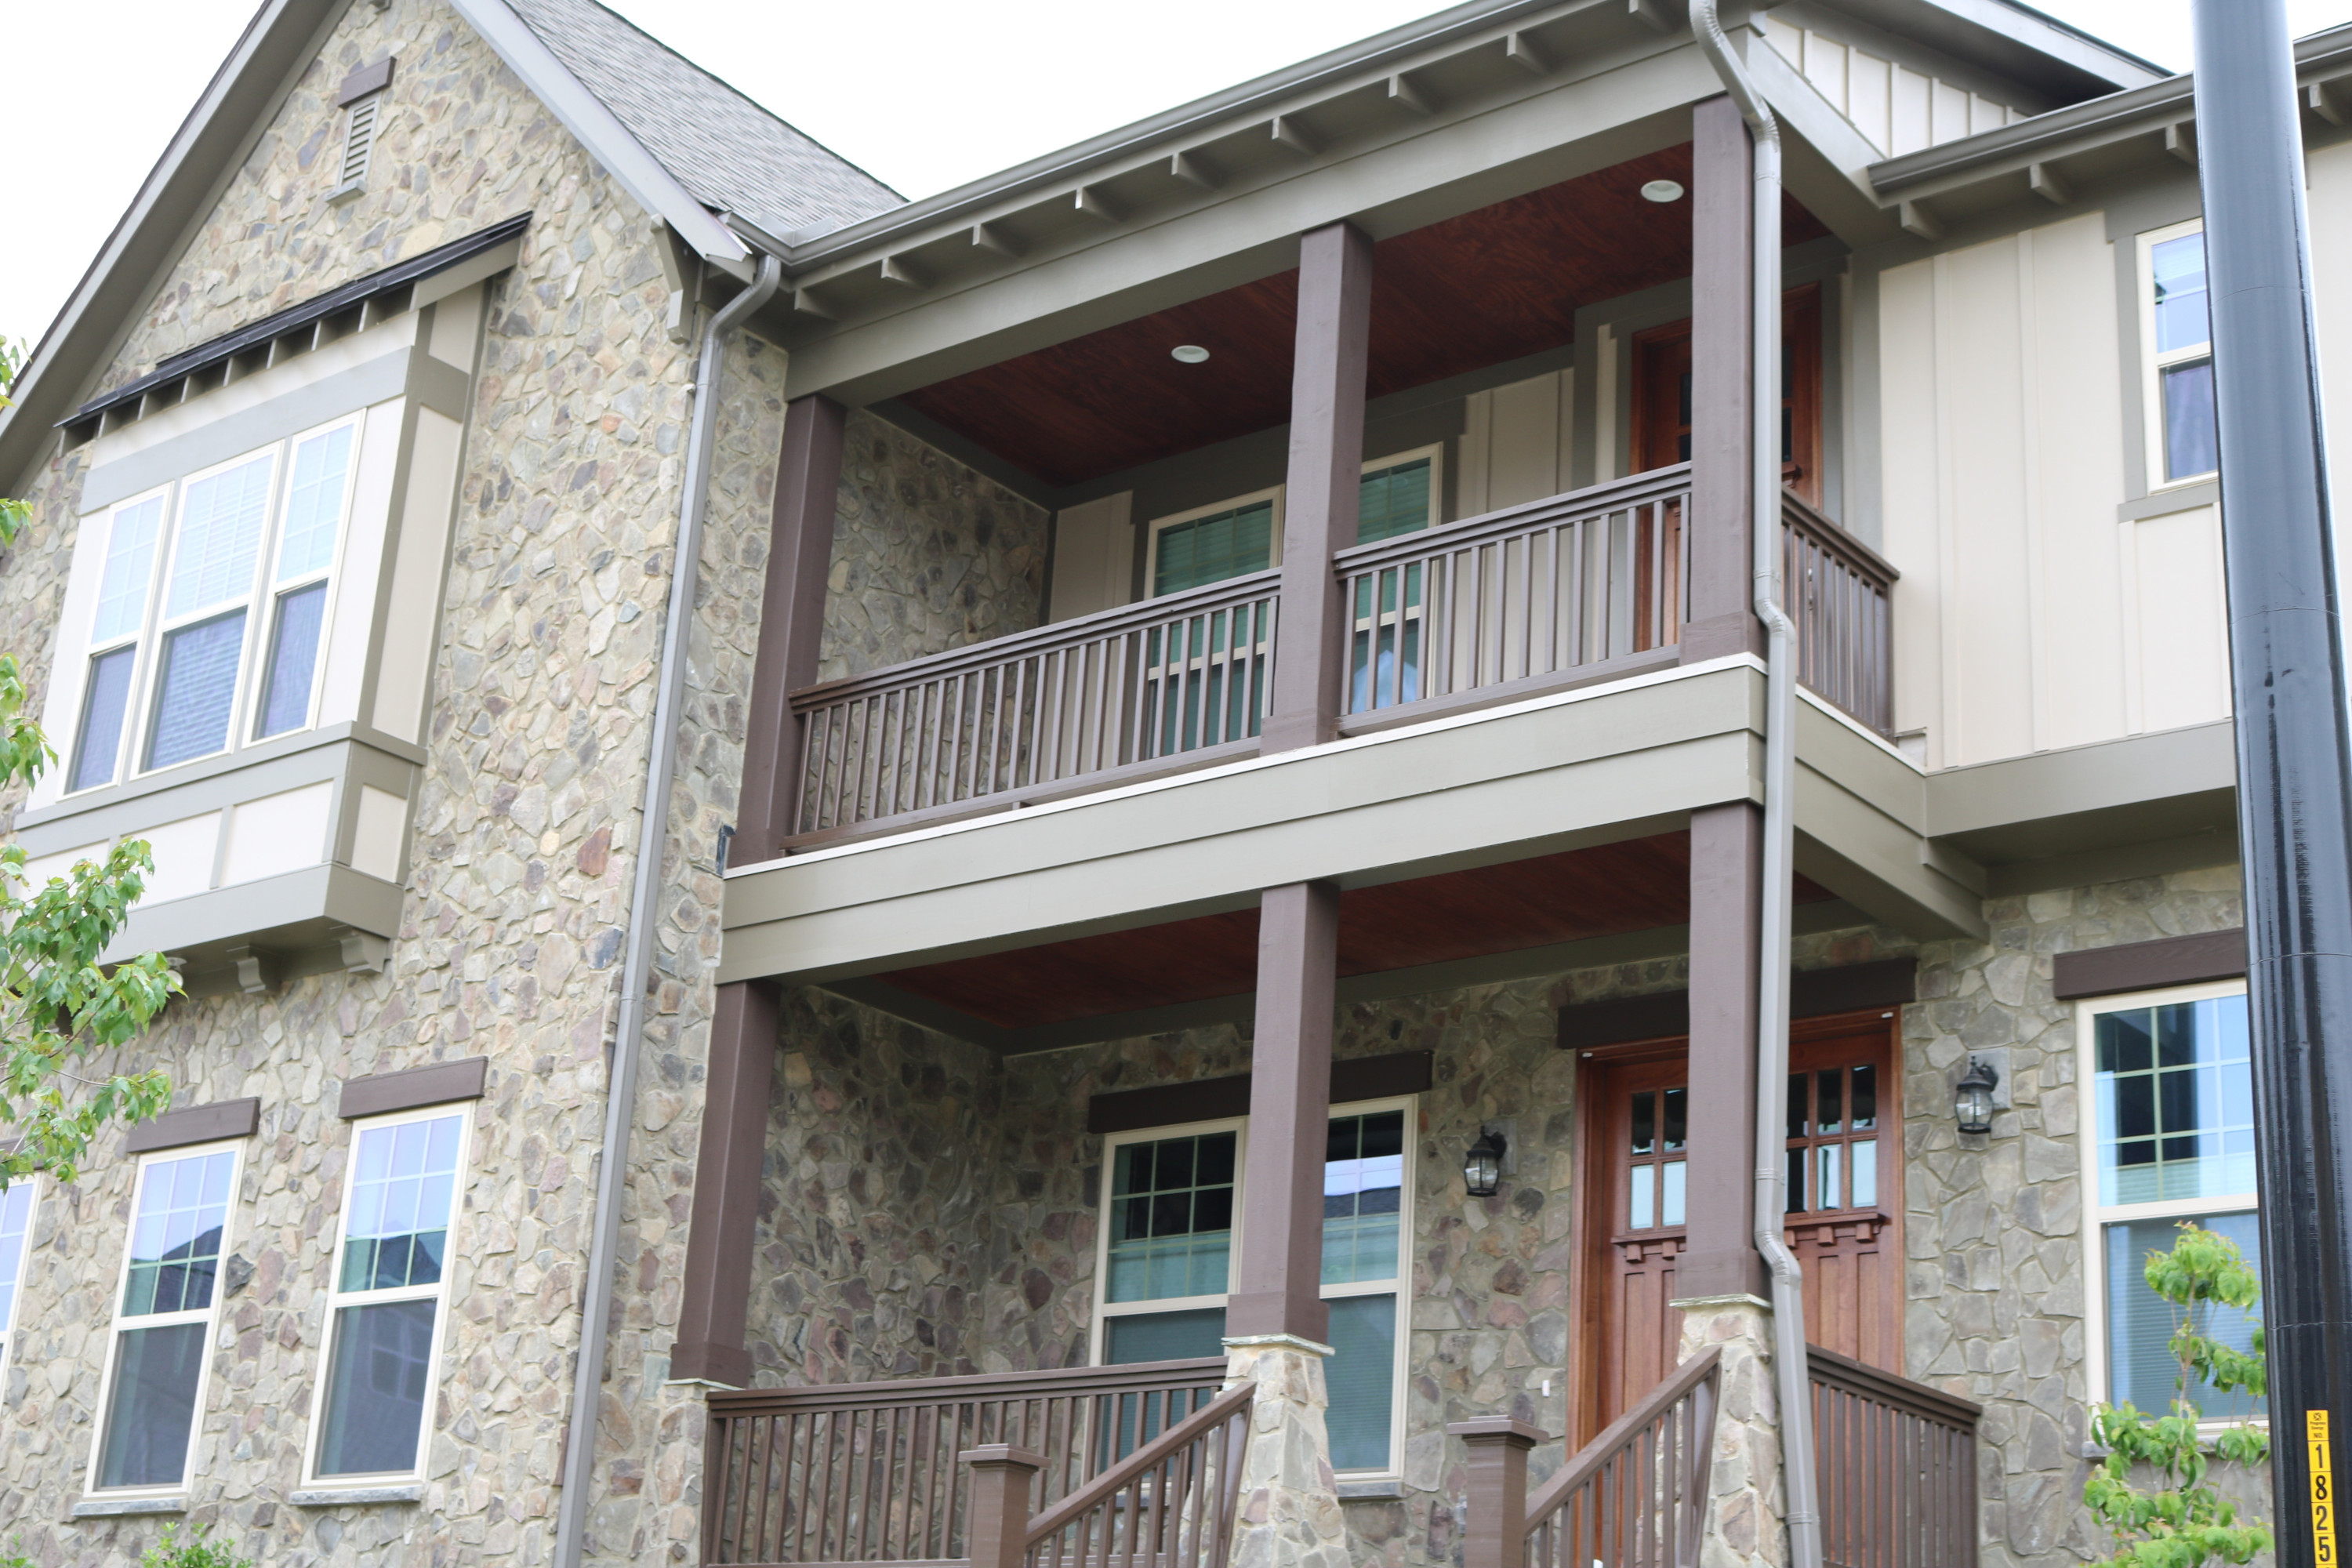 These wood post wraps and railings completel the 2 story porch on this home.